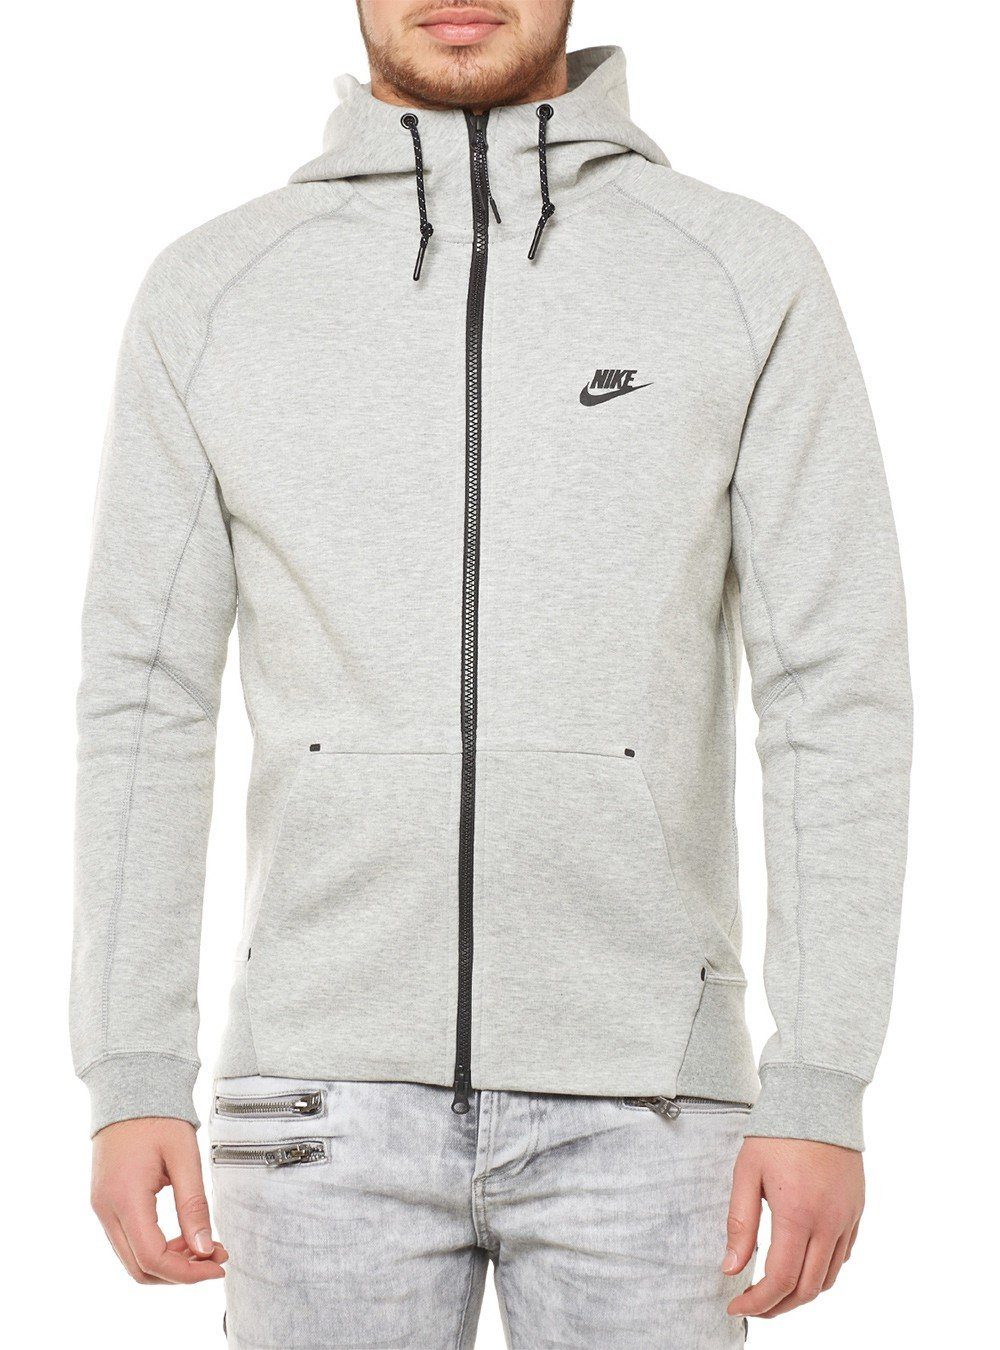 veste nike tech fleece homme gris les vestes la mode sont populaires partout dans le monde. Black Bedroom Furniture Sets. Home Design Ideas